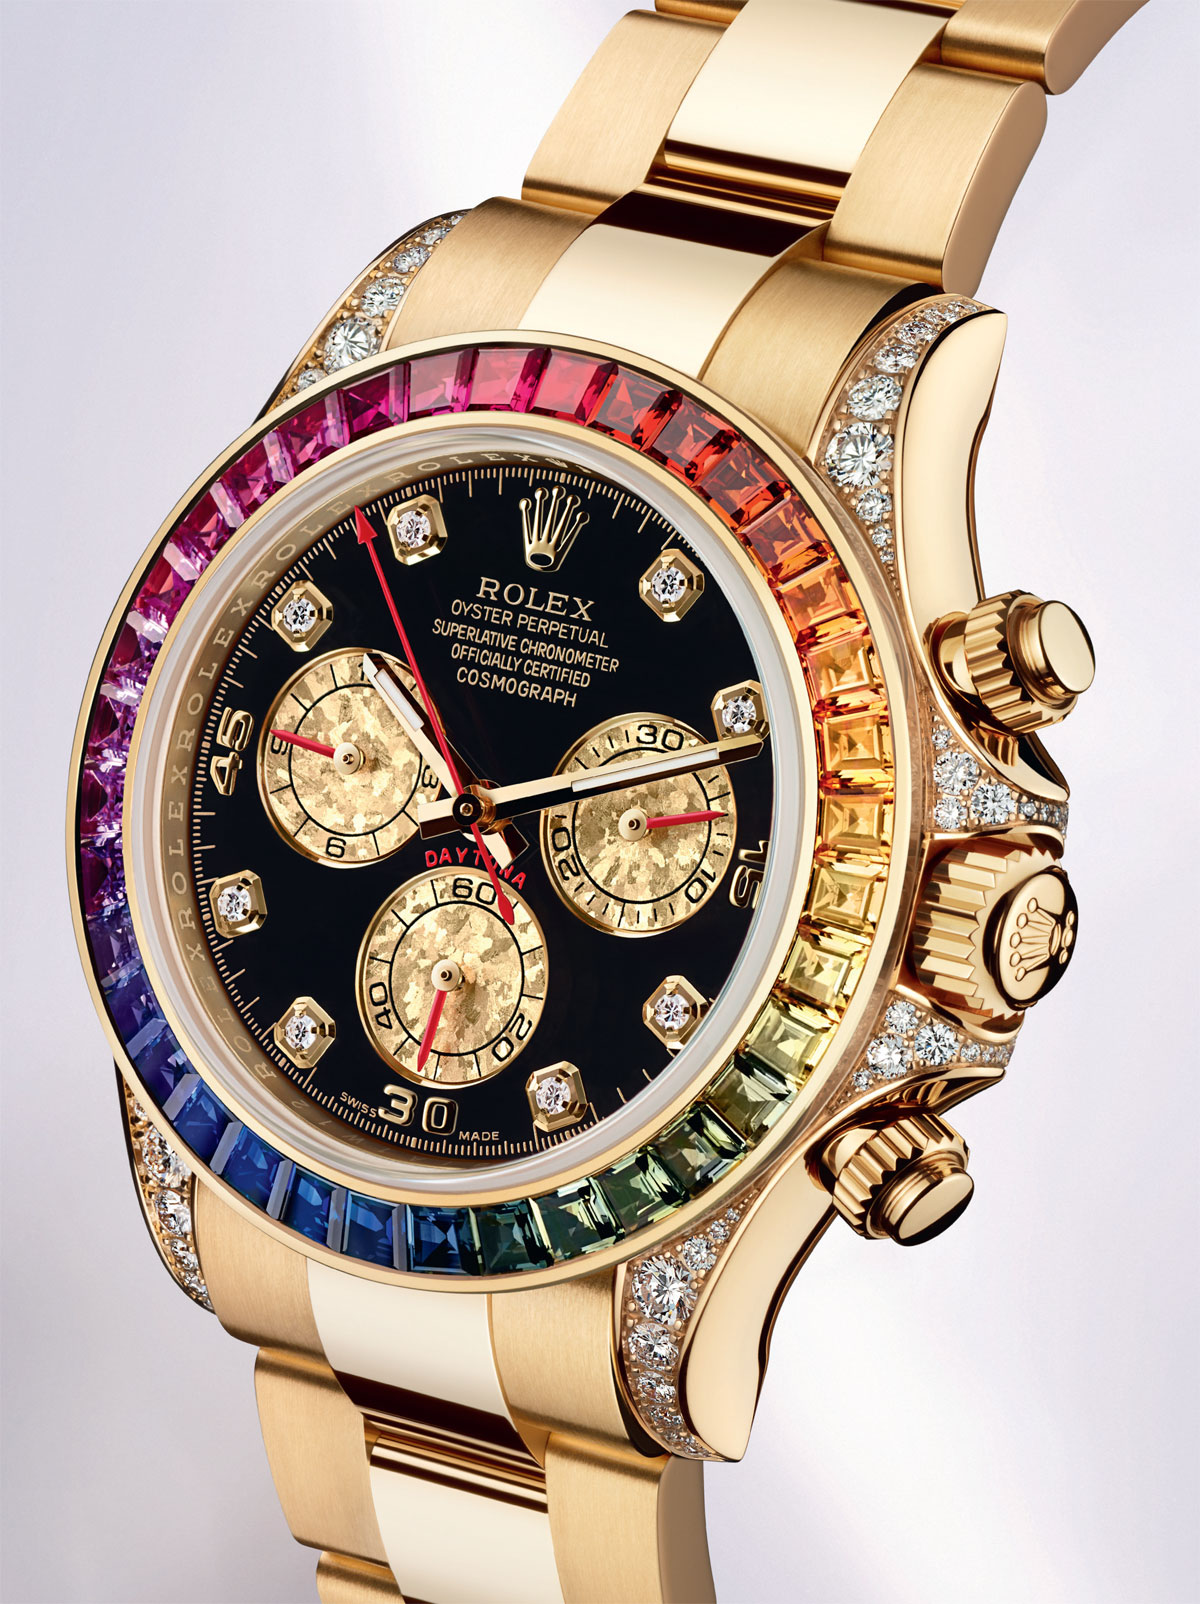 Rolex Cosmograph Daytona Rainbow Boasts Colourful Design